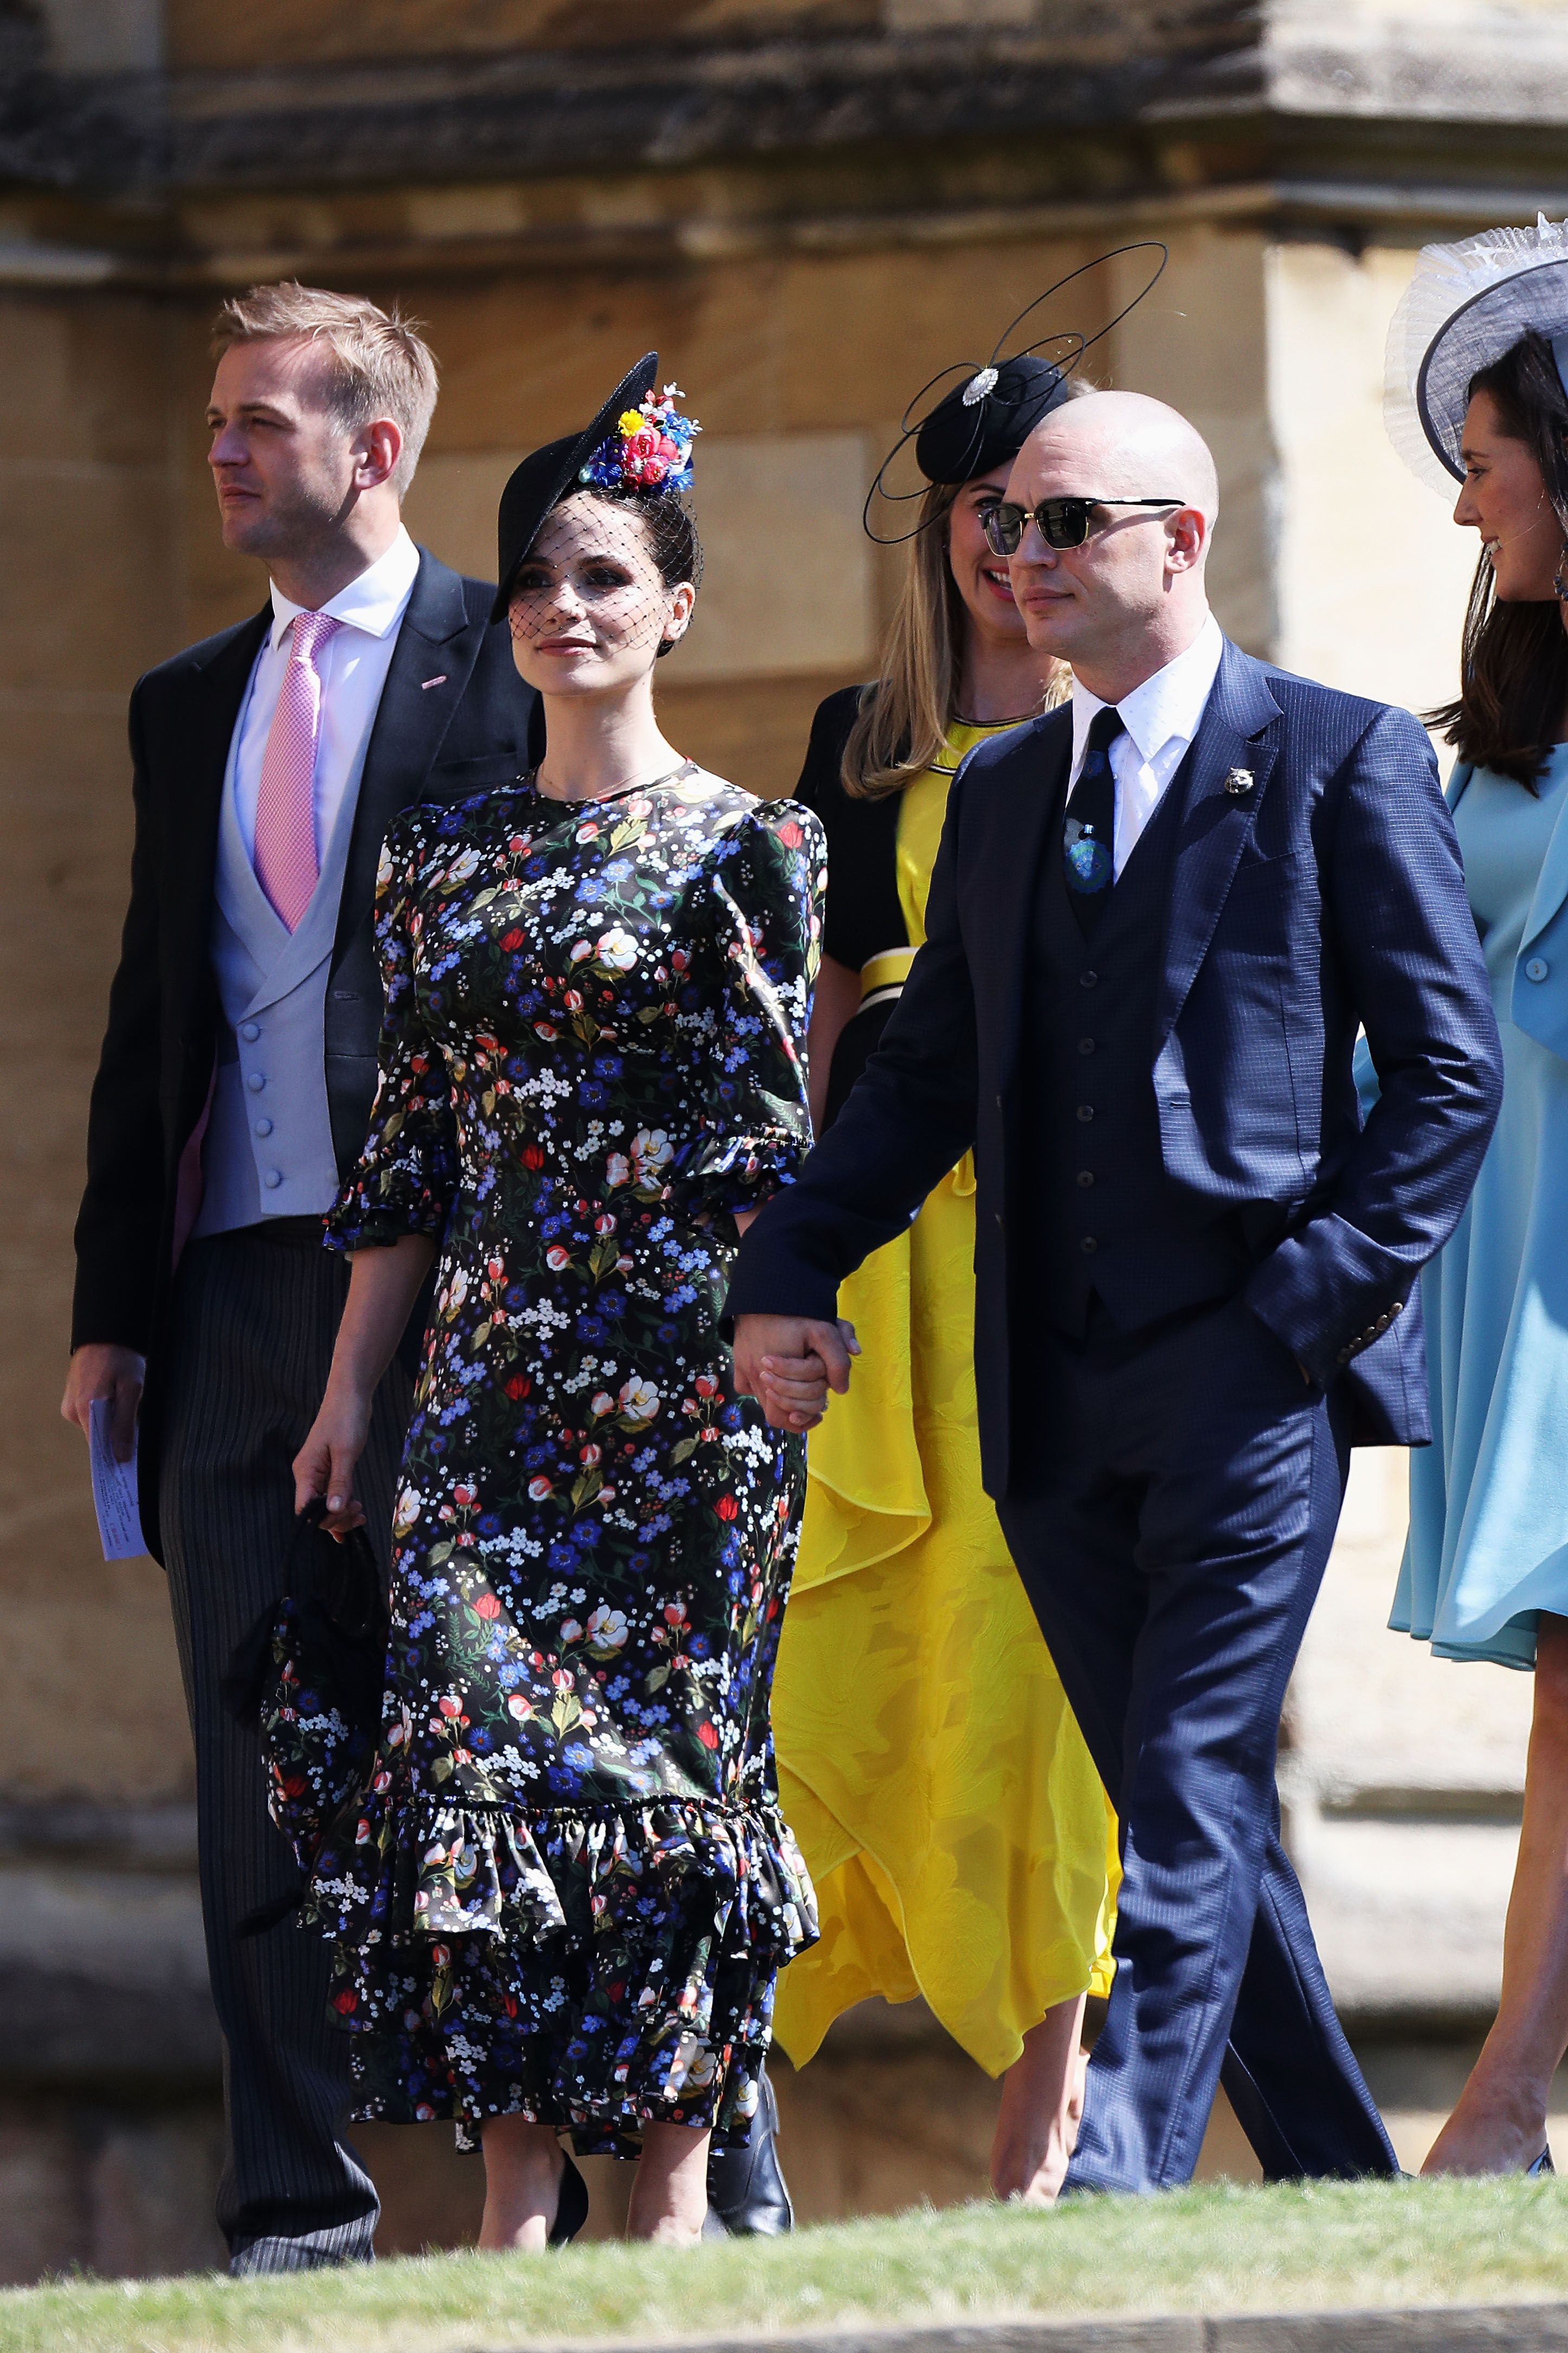 photo The five best dressed royal wedding guests - and how to shop their looks